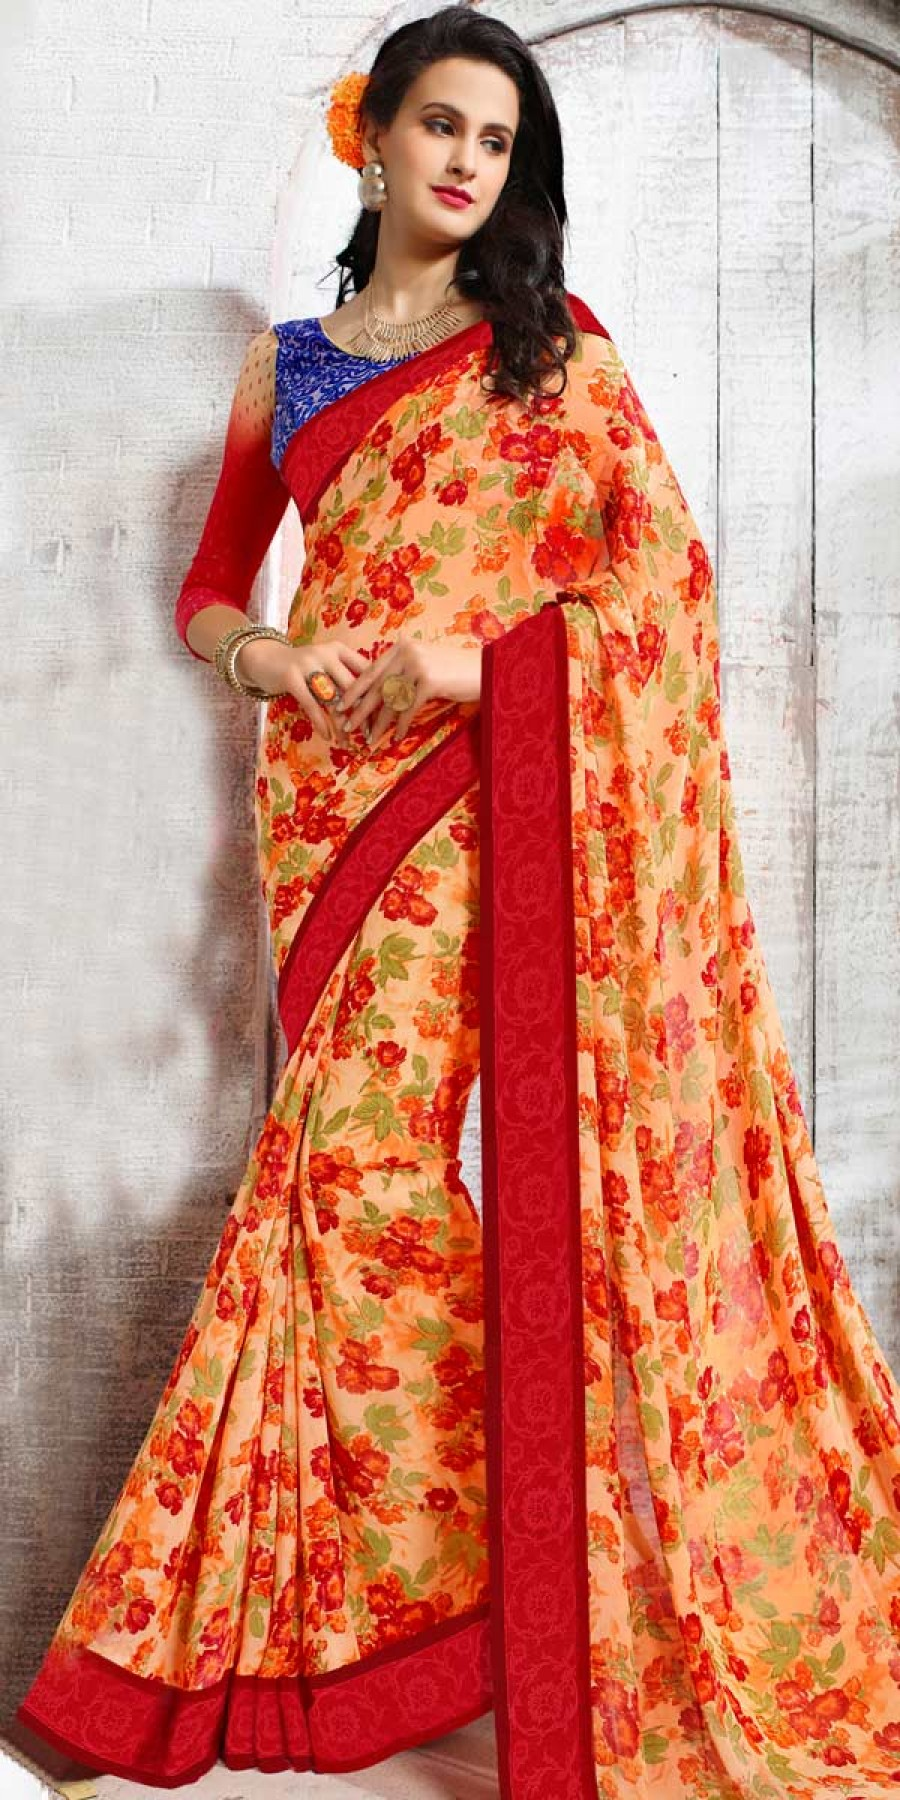 Buy Wondrous Red And Multi-Color Georgette Printed Saree. Online